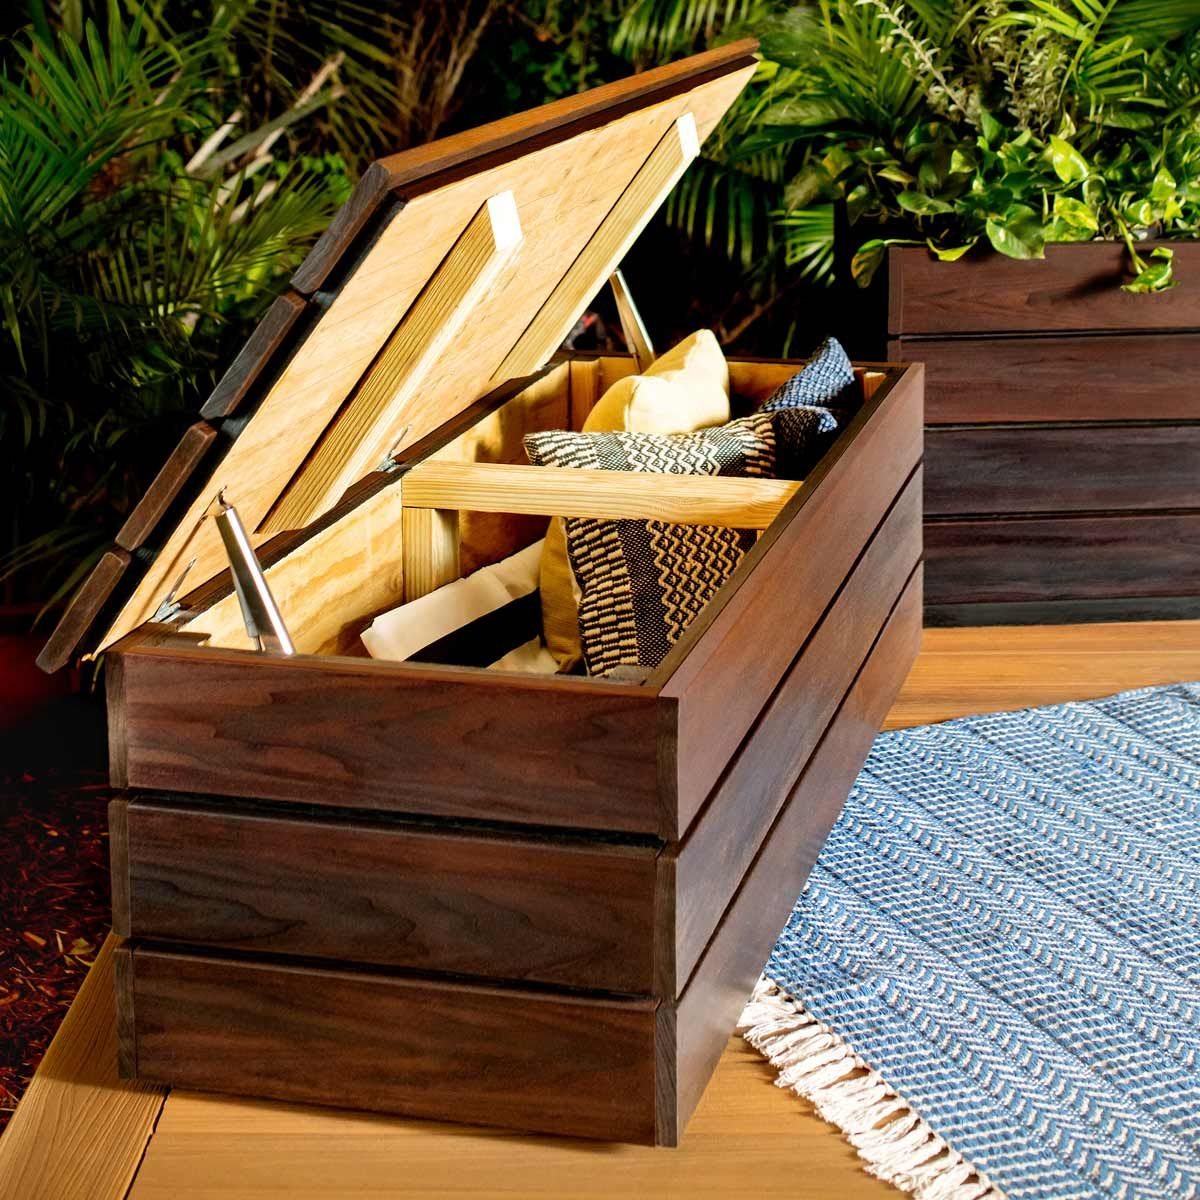 How to Build an Outdoor Storage Bench Outdoor storage